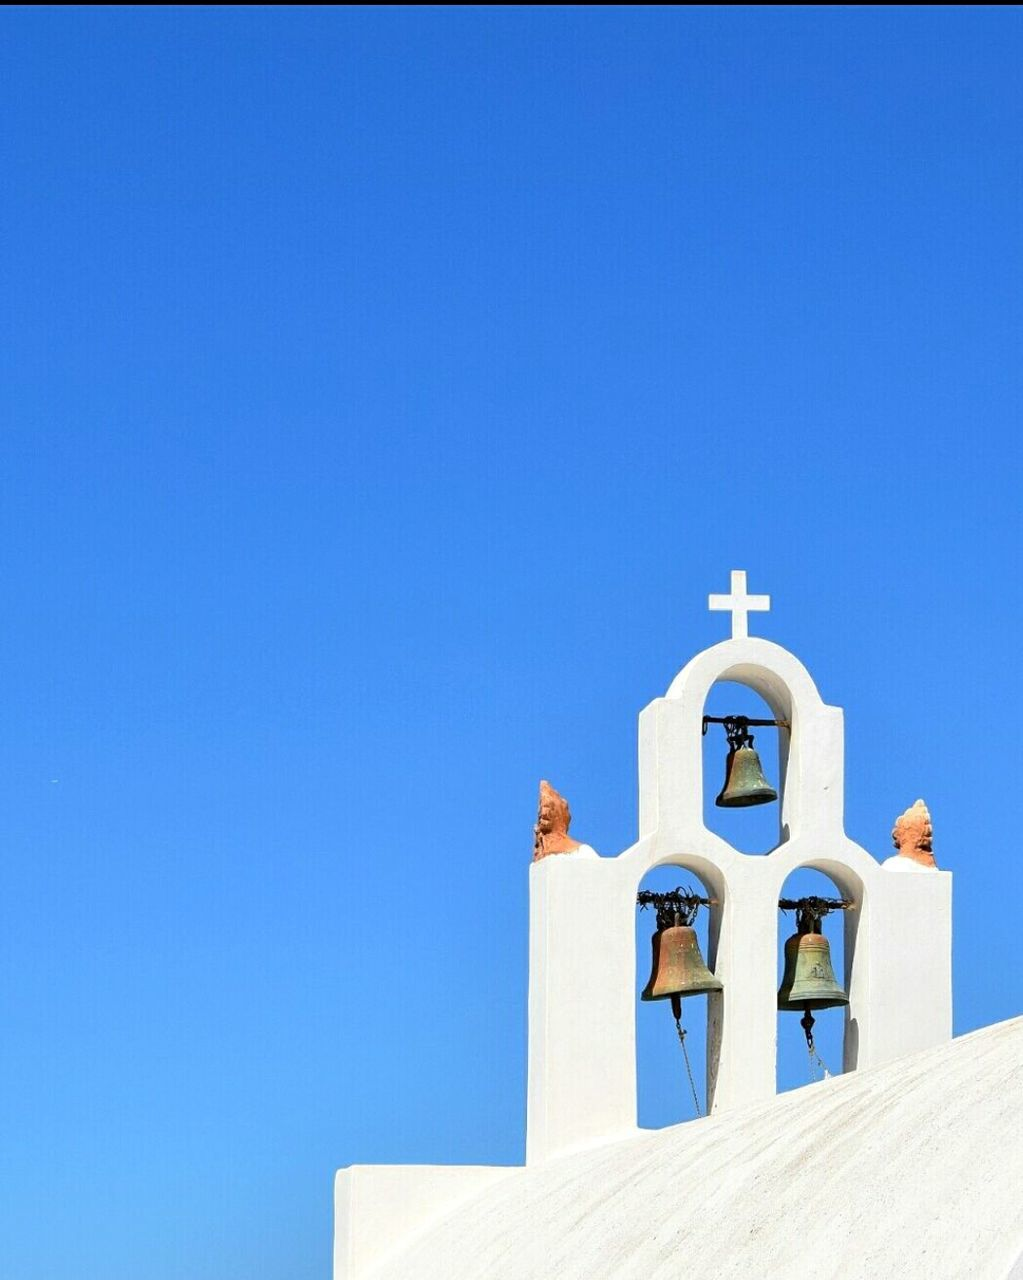 religion, clear sky, copy space, blue, white color, built structure, day, spirituality, low angle view, place of worship, outdoors, architecture, no people, whitewashed, bell, cross, summer, sunlight, bell tower, building exterior, nature, sky